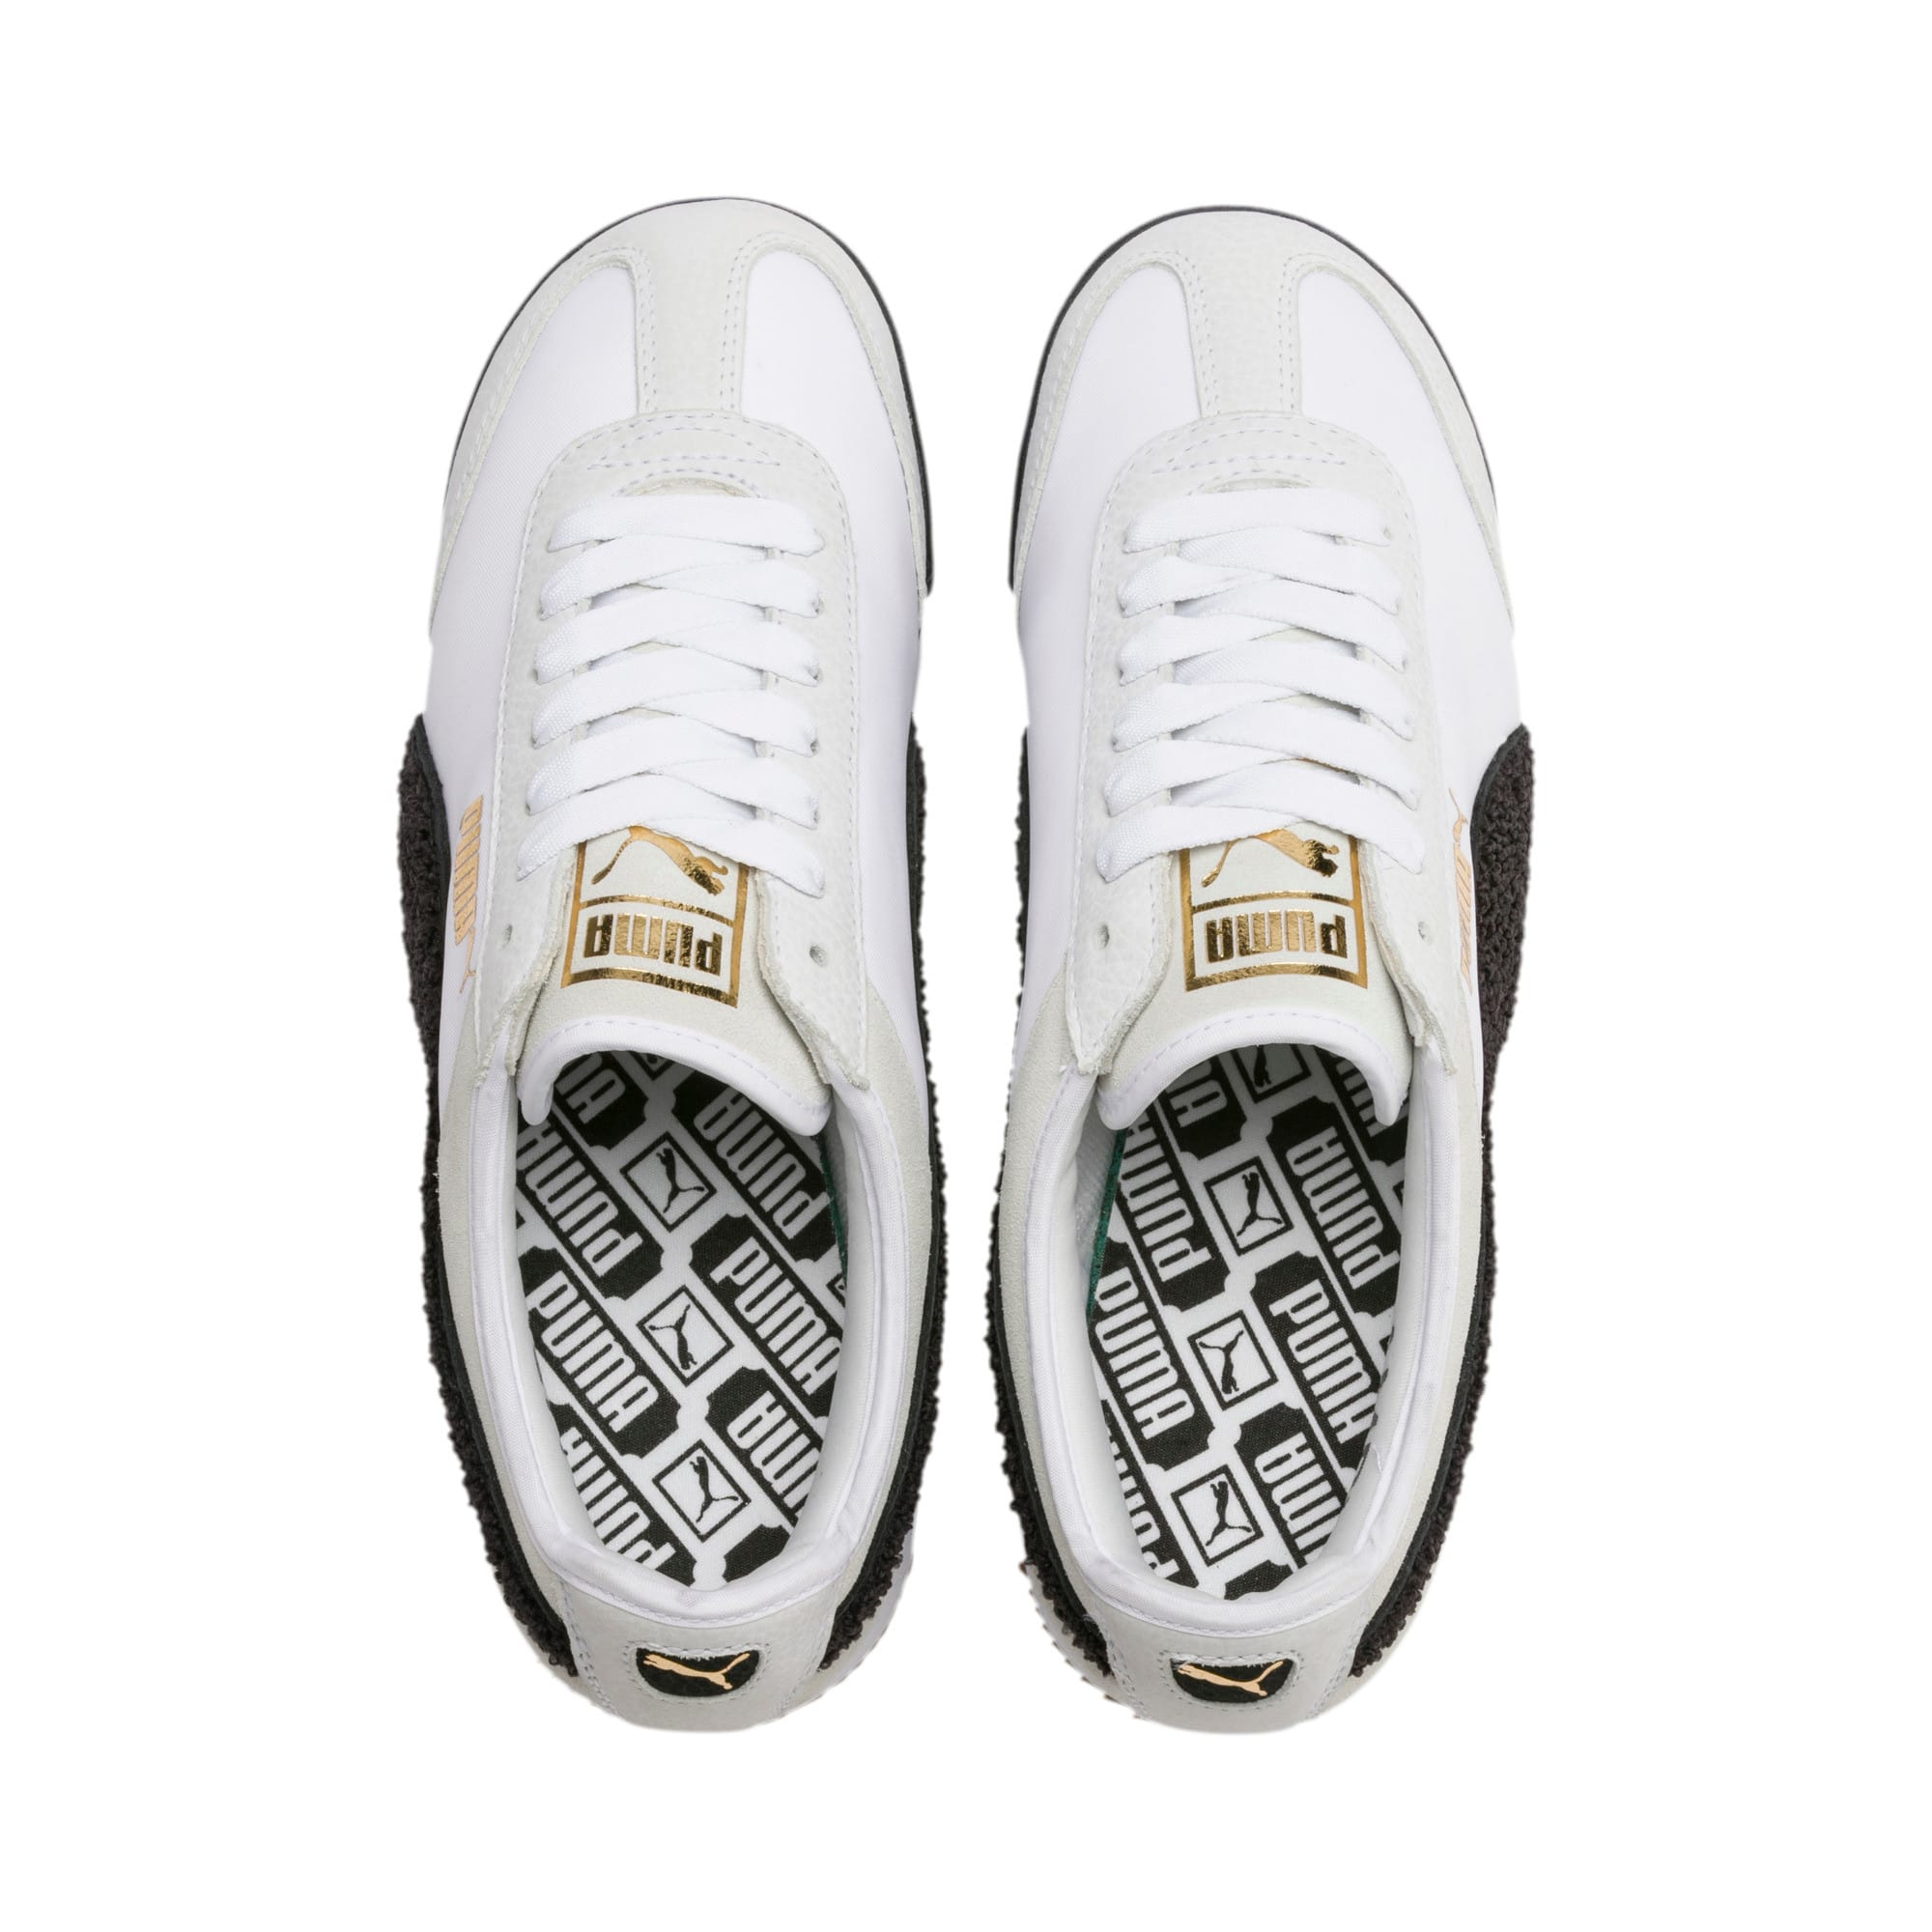 Thumbnail 8 of Roma Amor Heritage Women's Sneakers, Puma White-Puma Black, medium